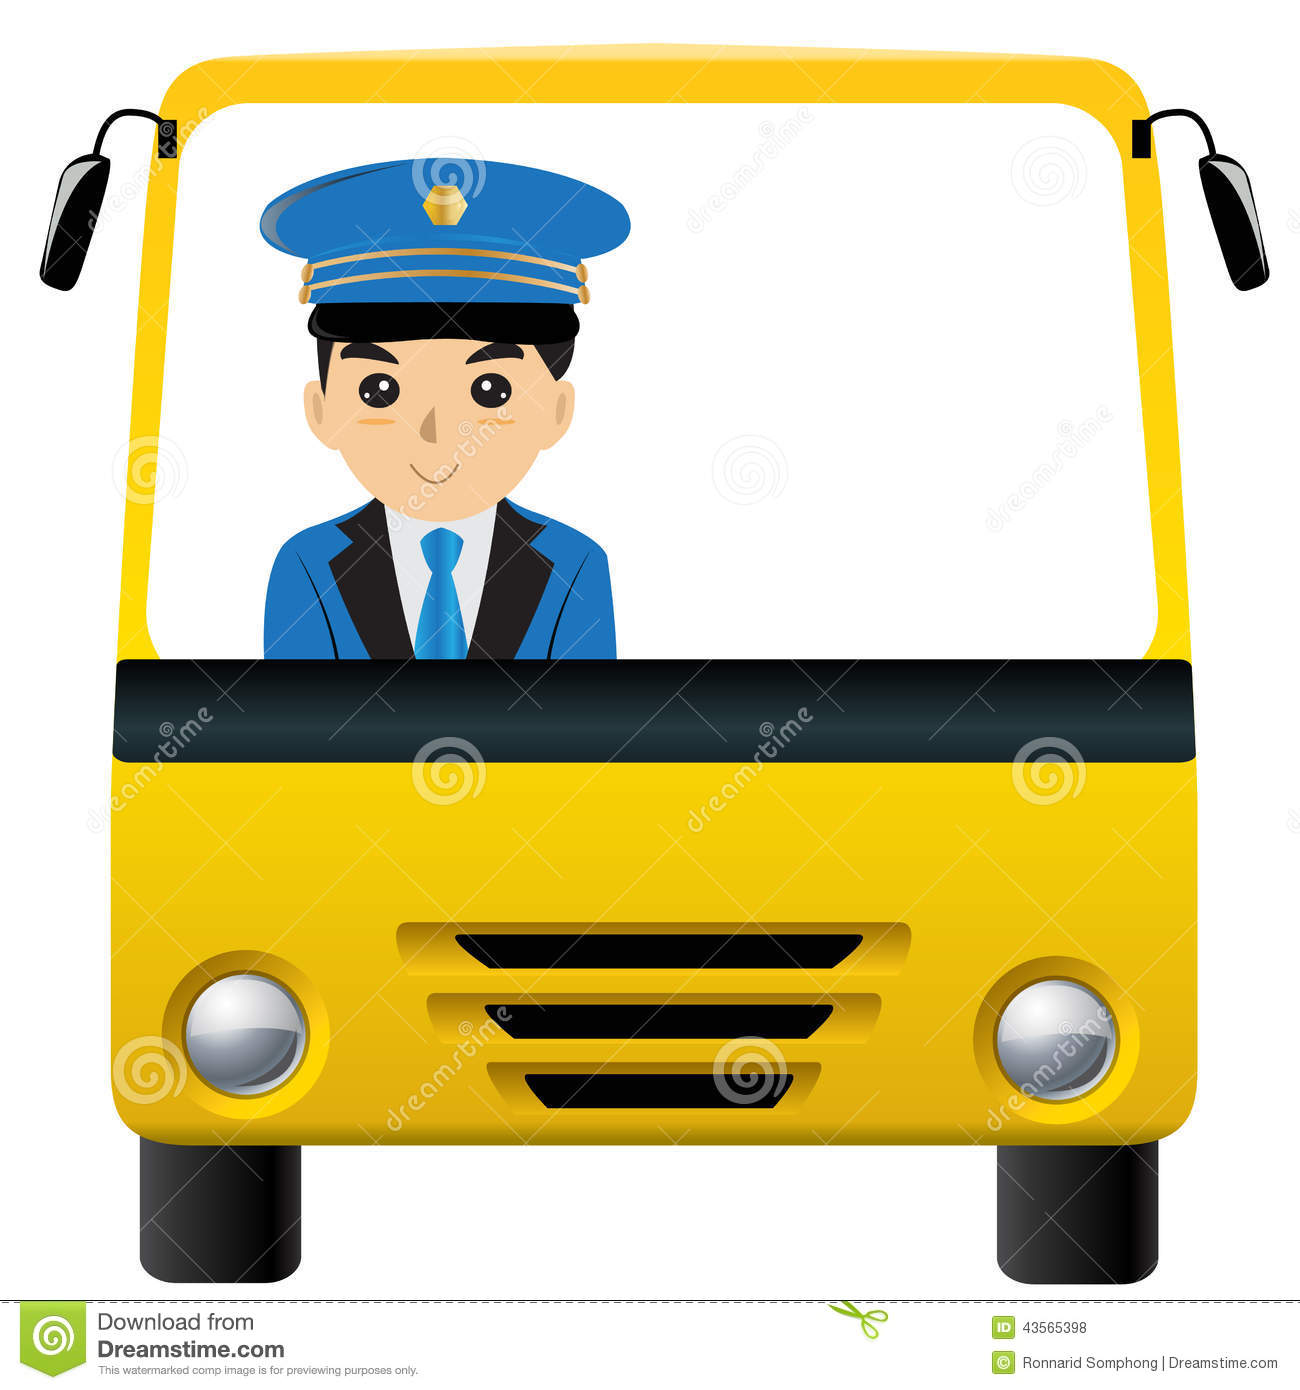 city bus driver clipart - photo #4